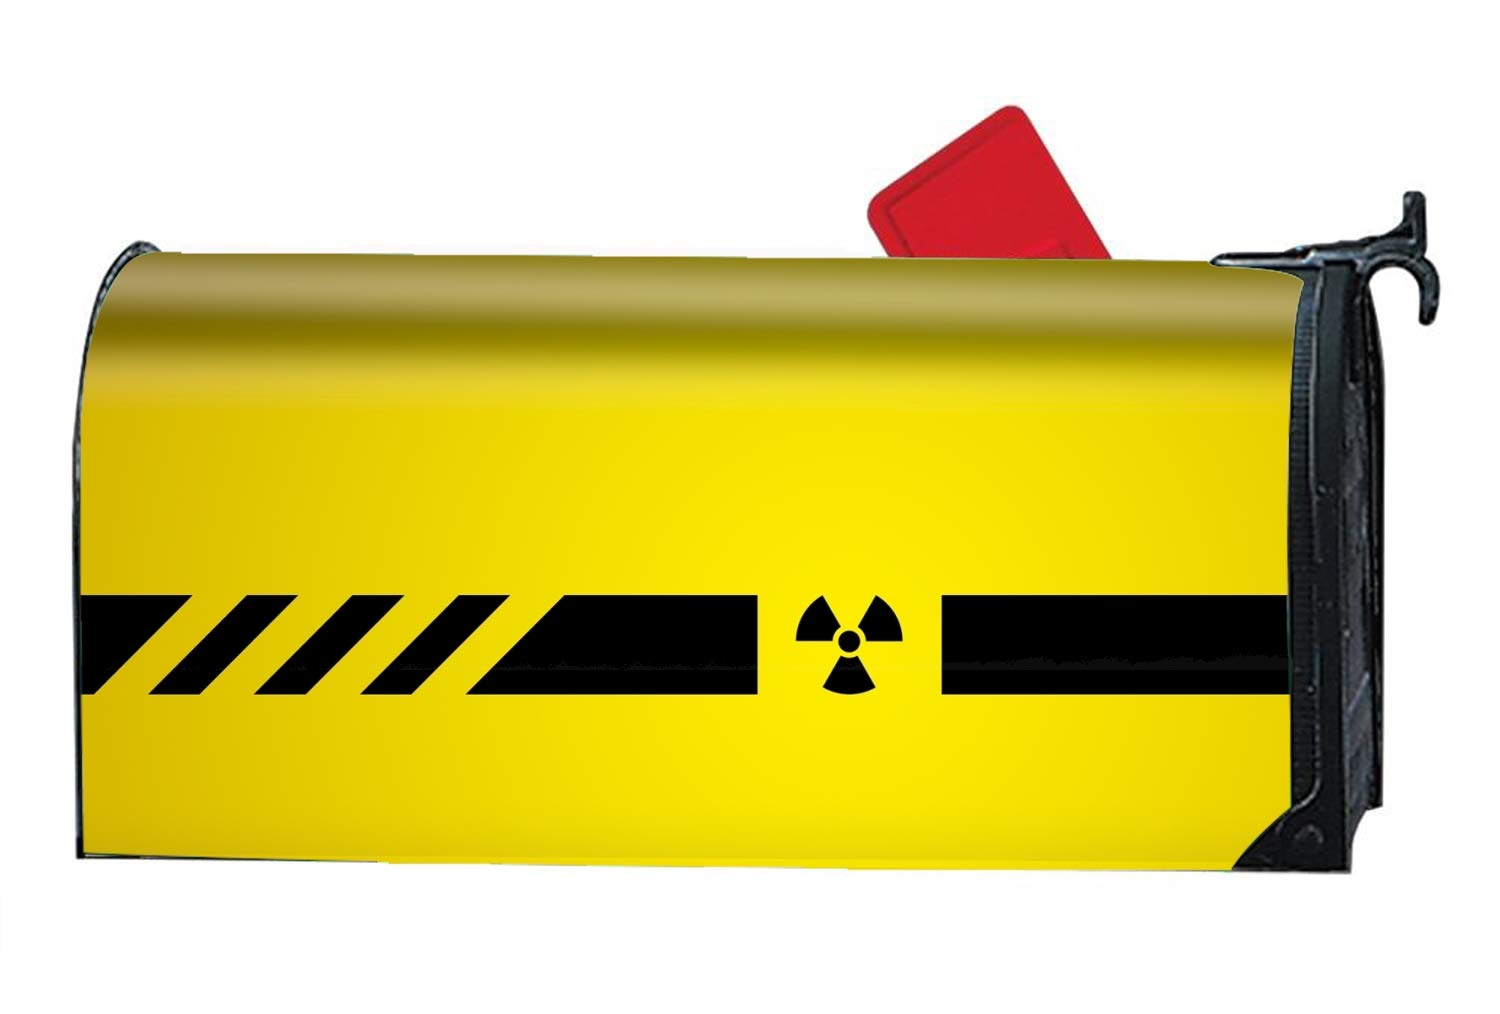 jiajufushi Nuclear Power 21 x 9inches Standard Size Mailbox Cover